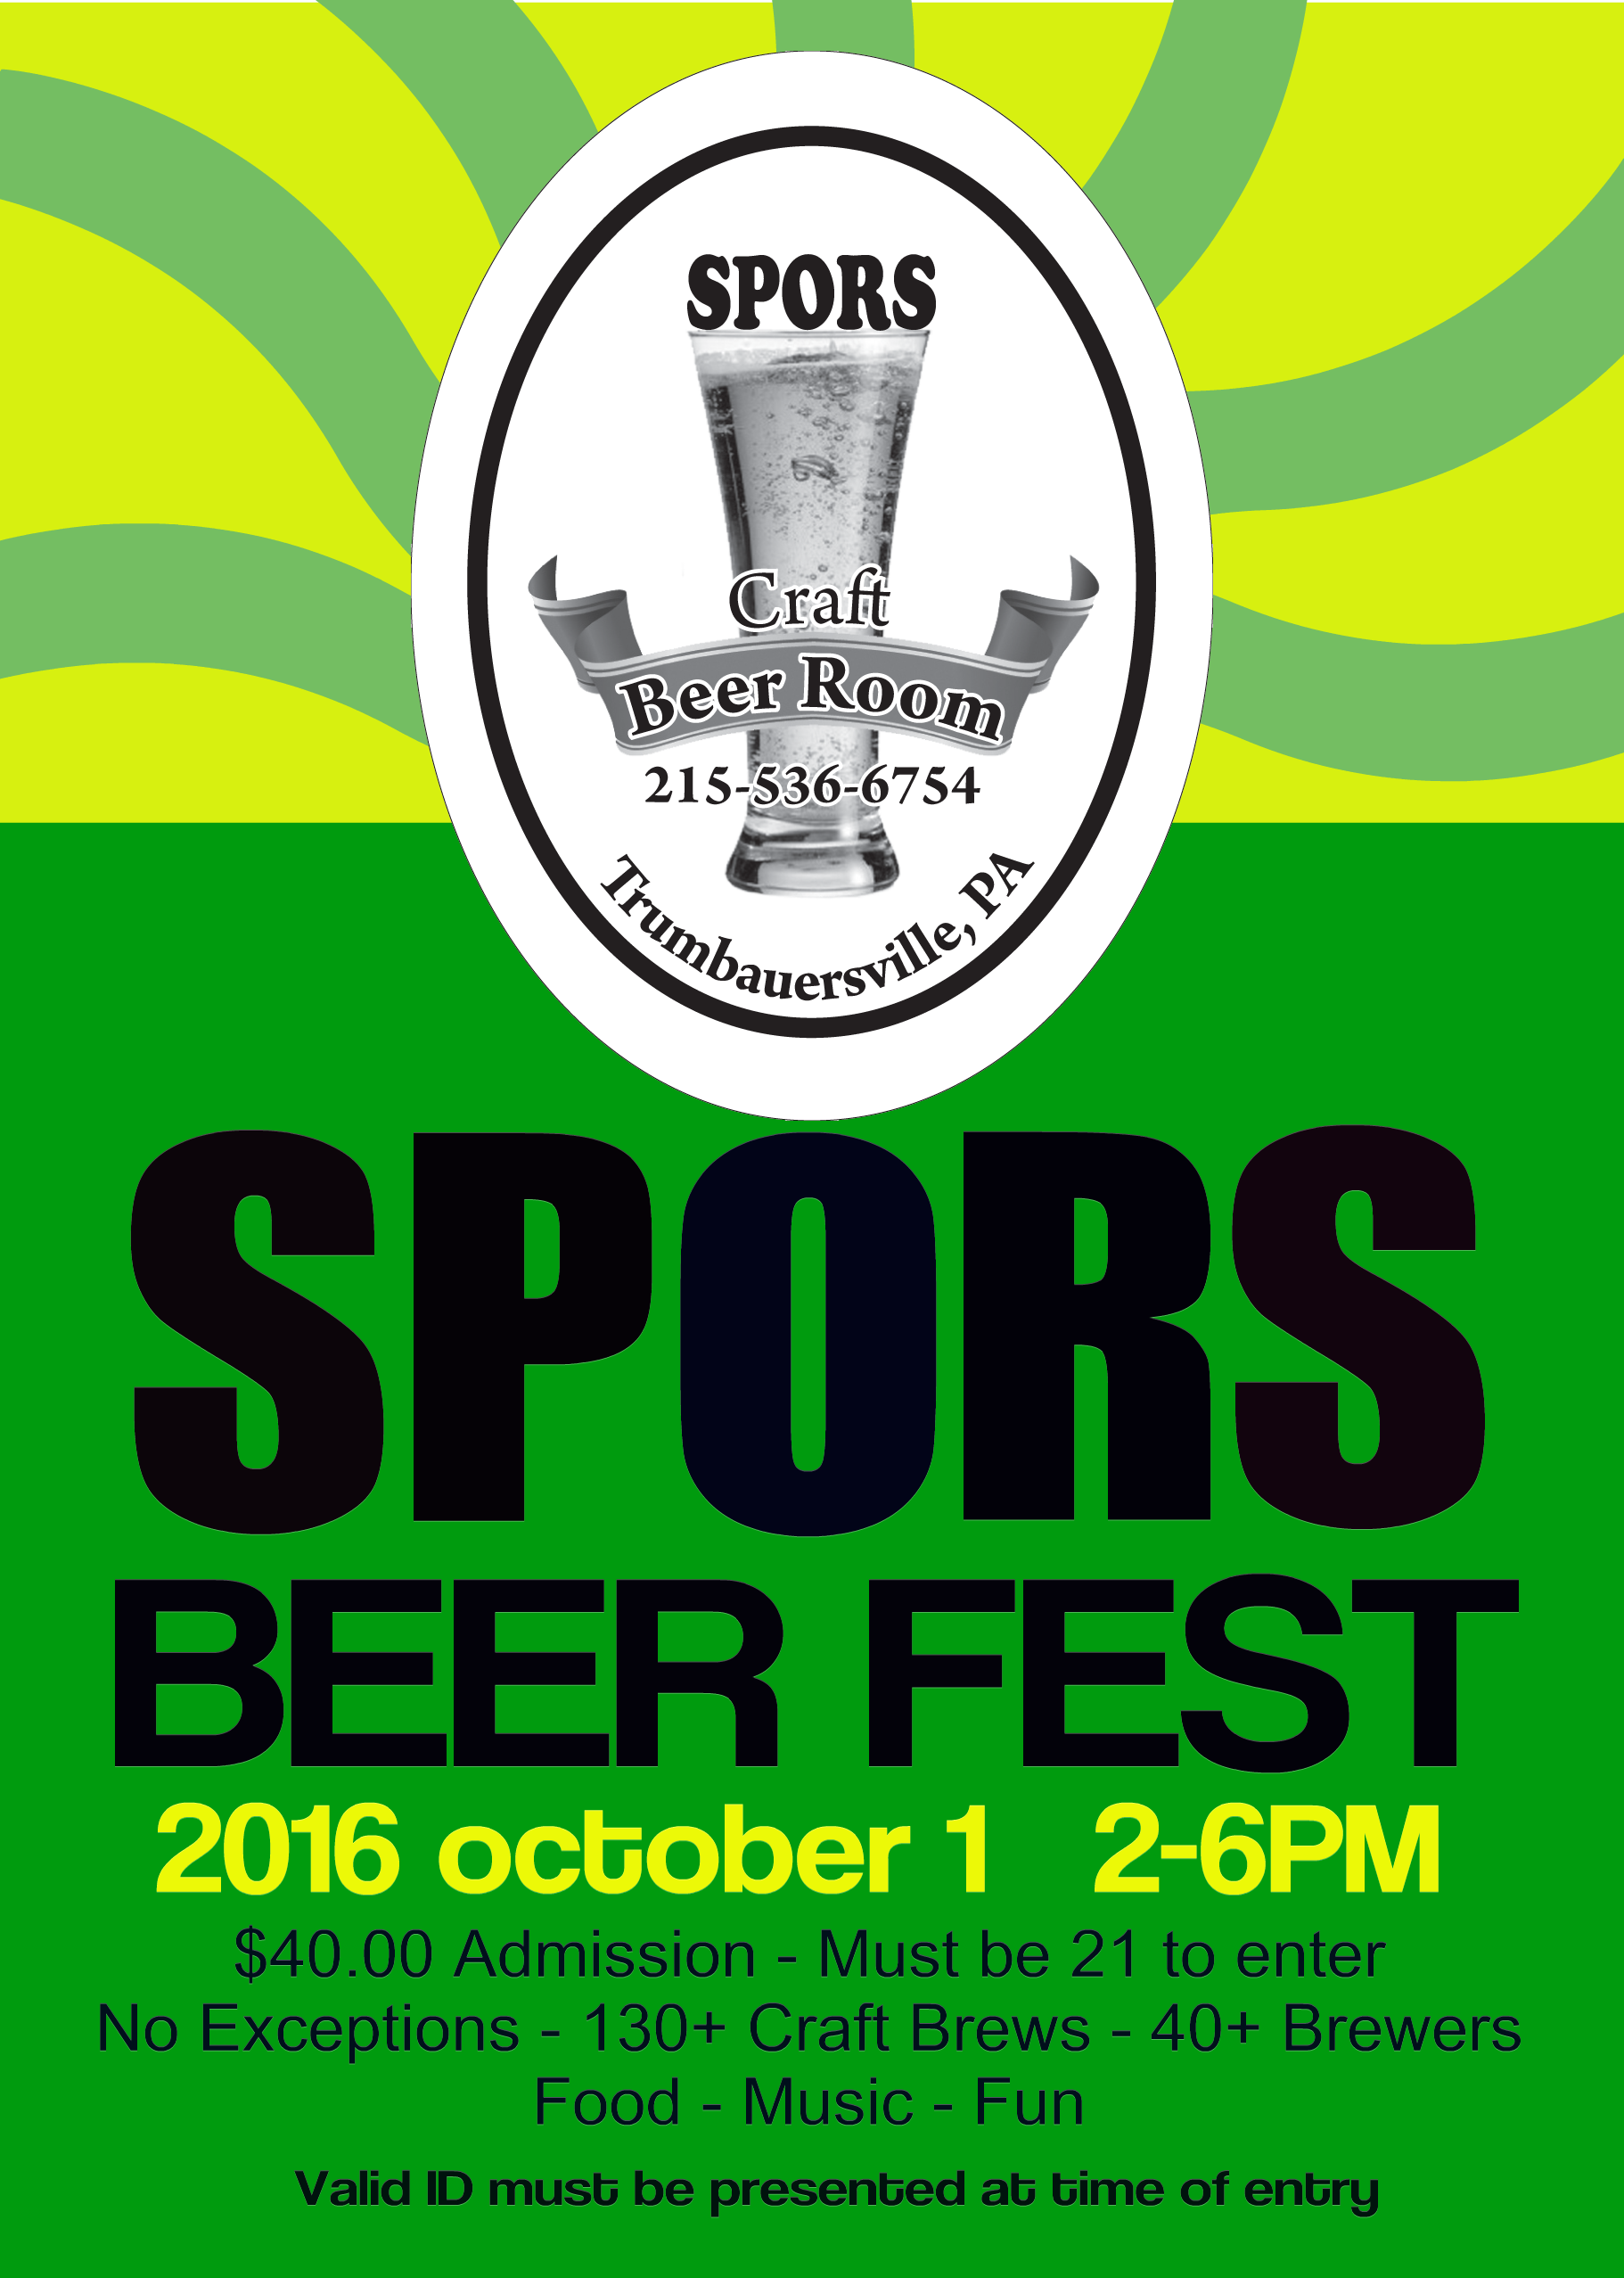 Spors General Store - Second Annual BeerFest